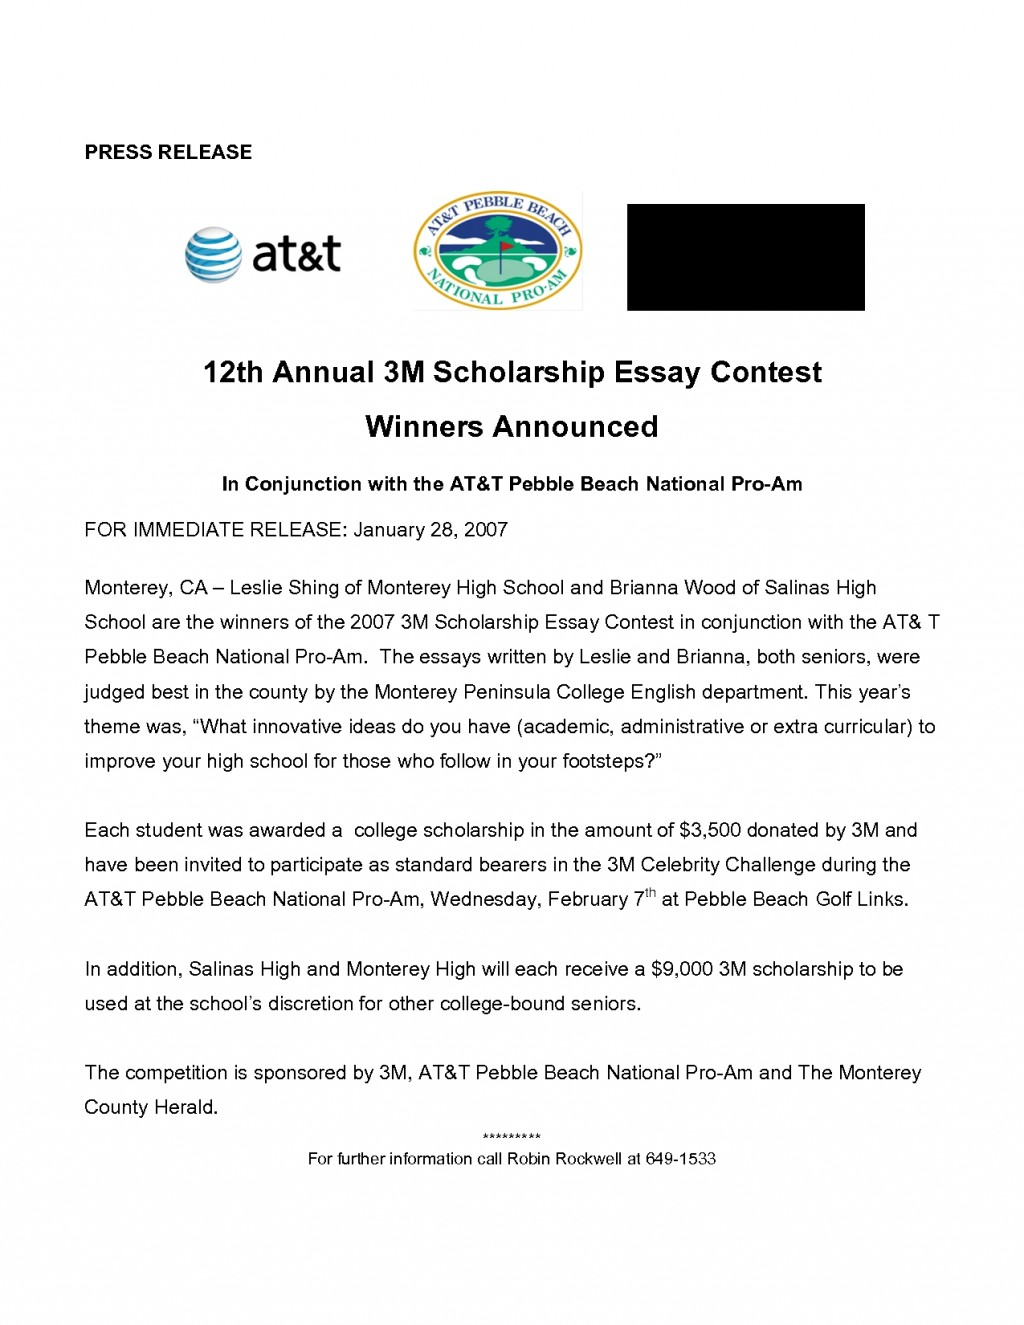 004 Scholarship Essay Contests Example High School Examples Printables Corner Contest Scholarships For College Students Application He Stupendous Middle Seniors Large